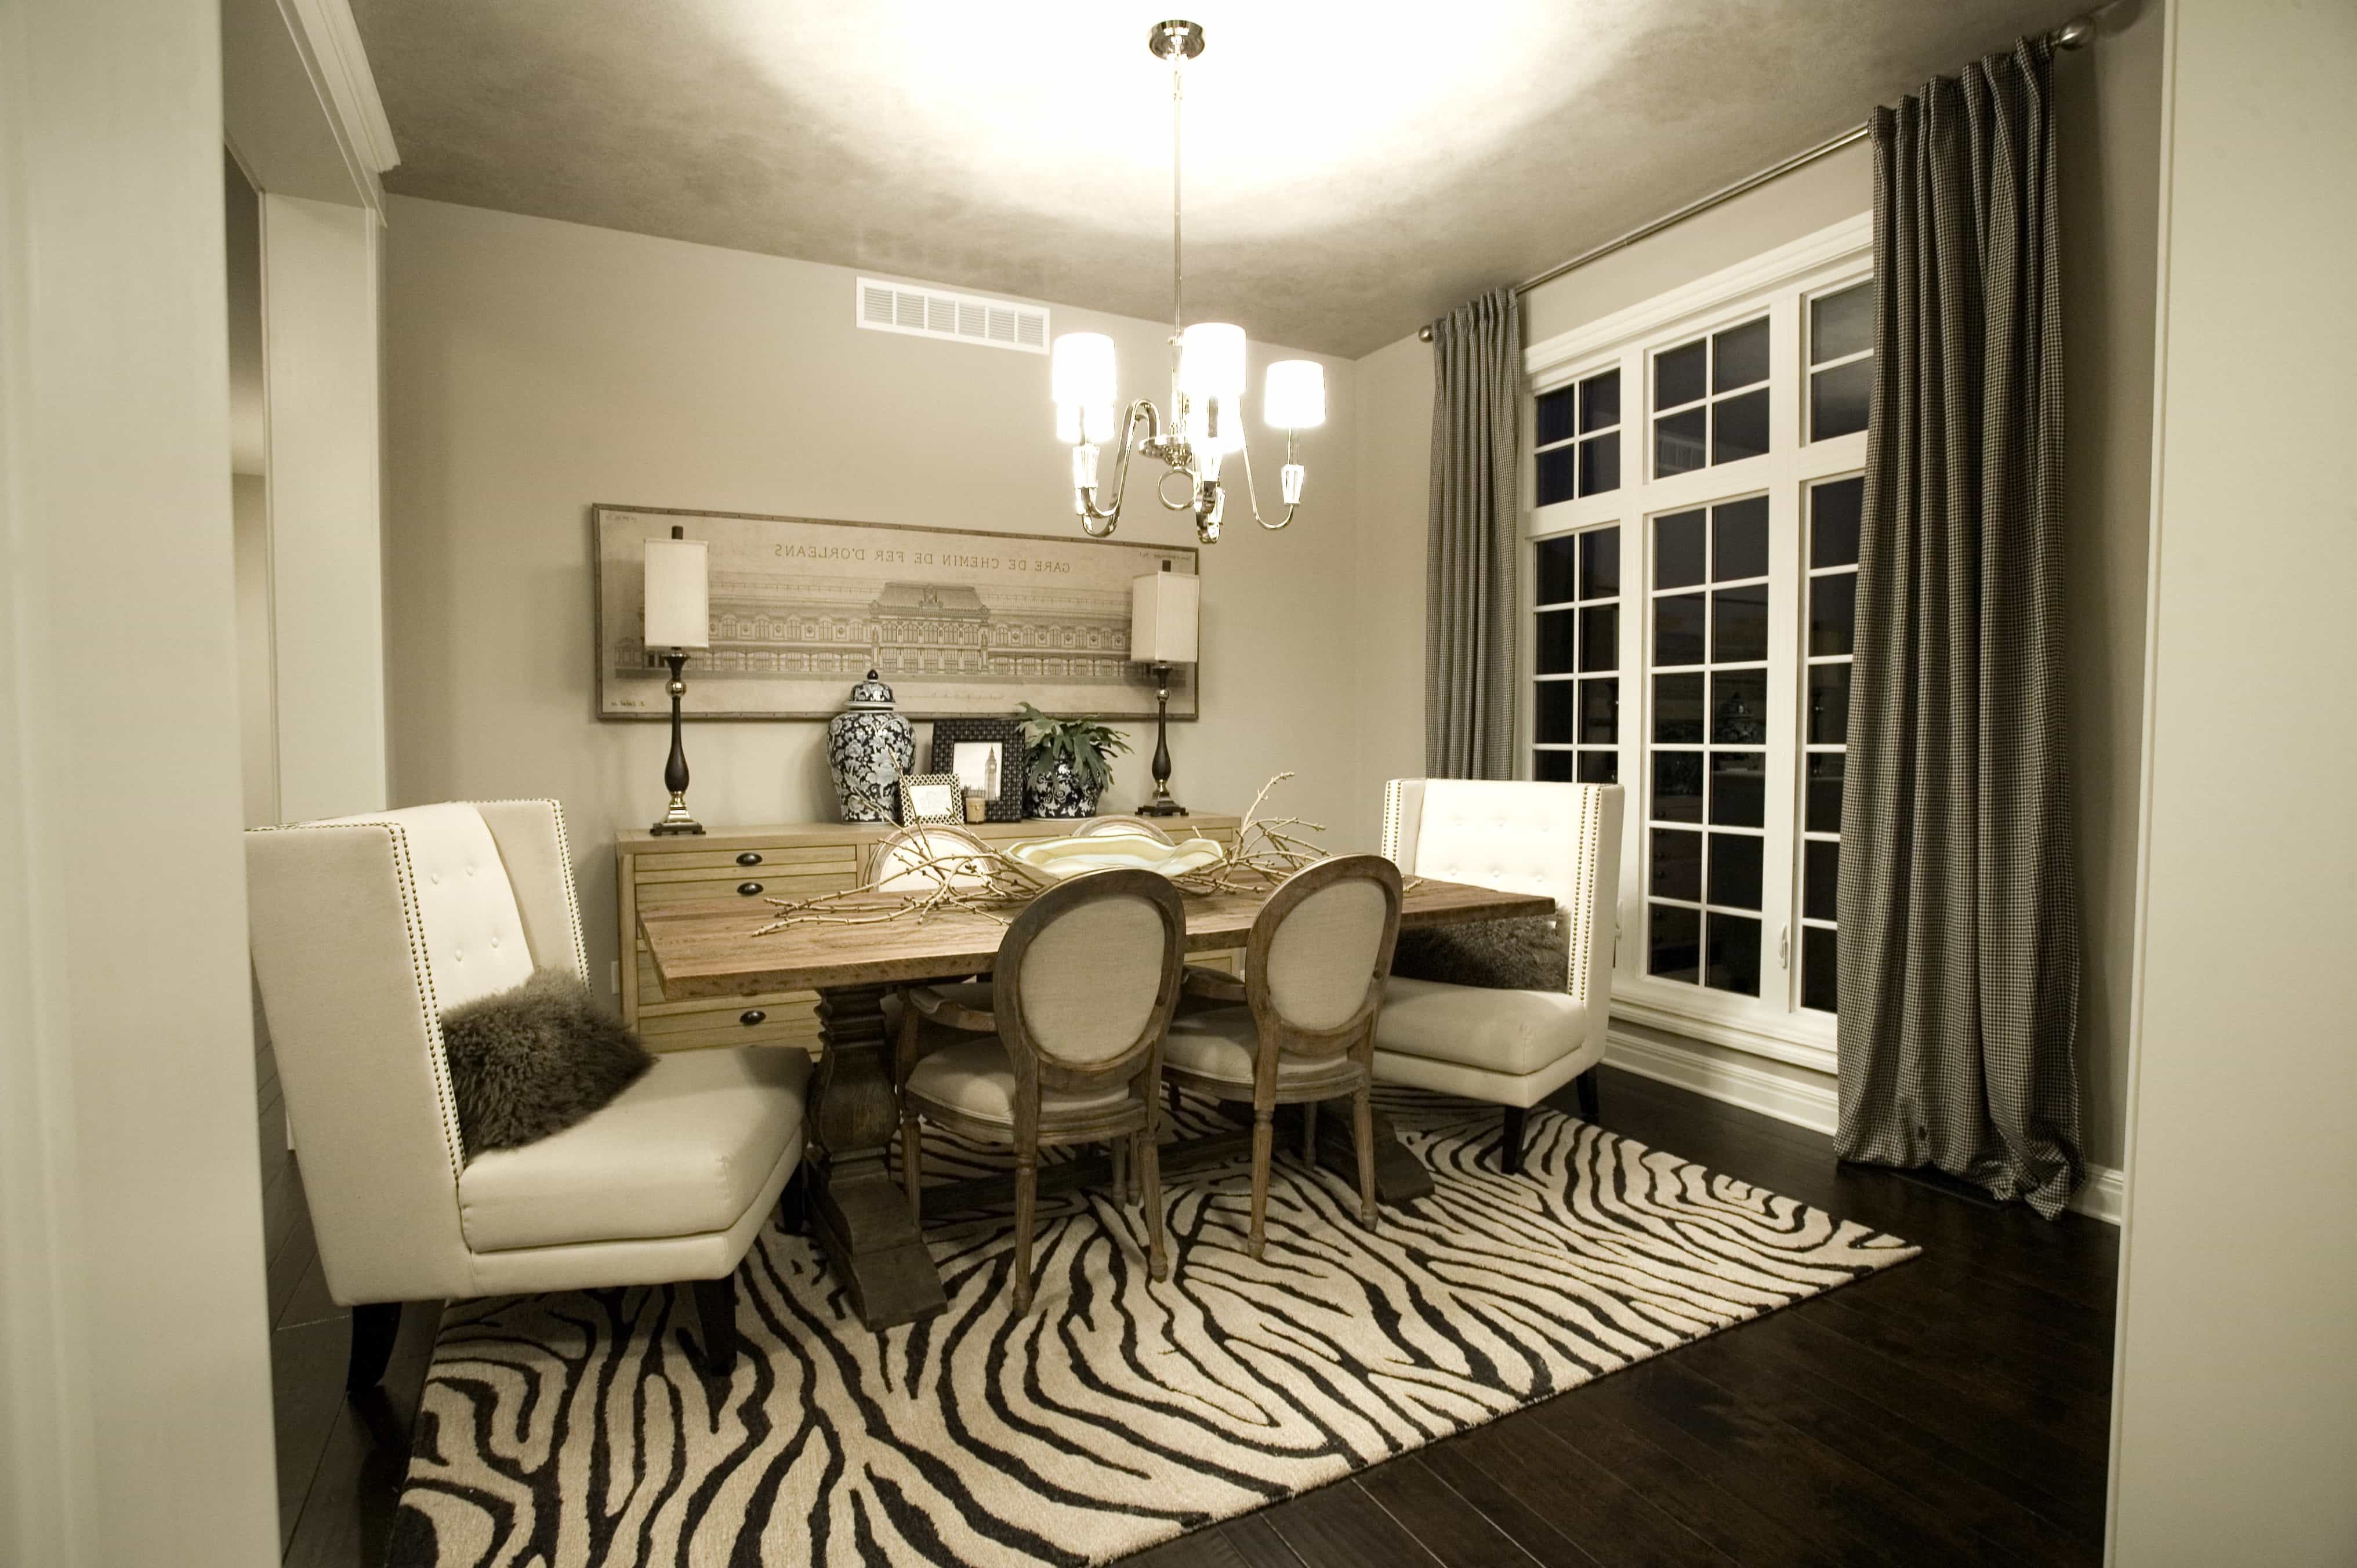 Zebra Area Rug For Rustic Dining Room (Image 28 of 28)